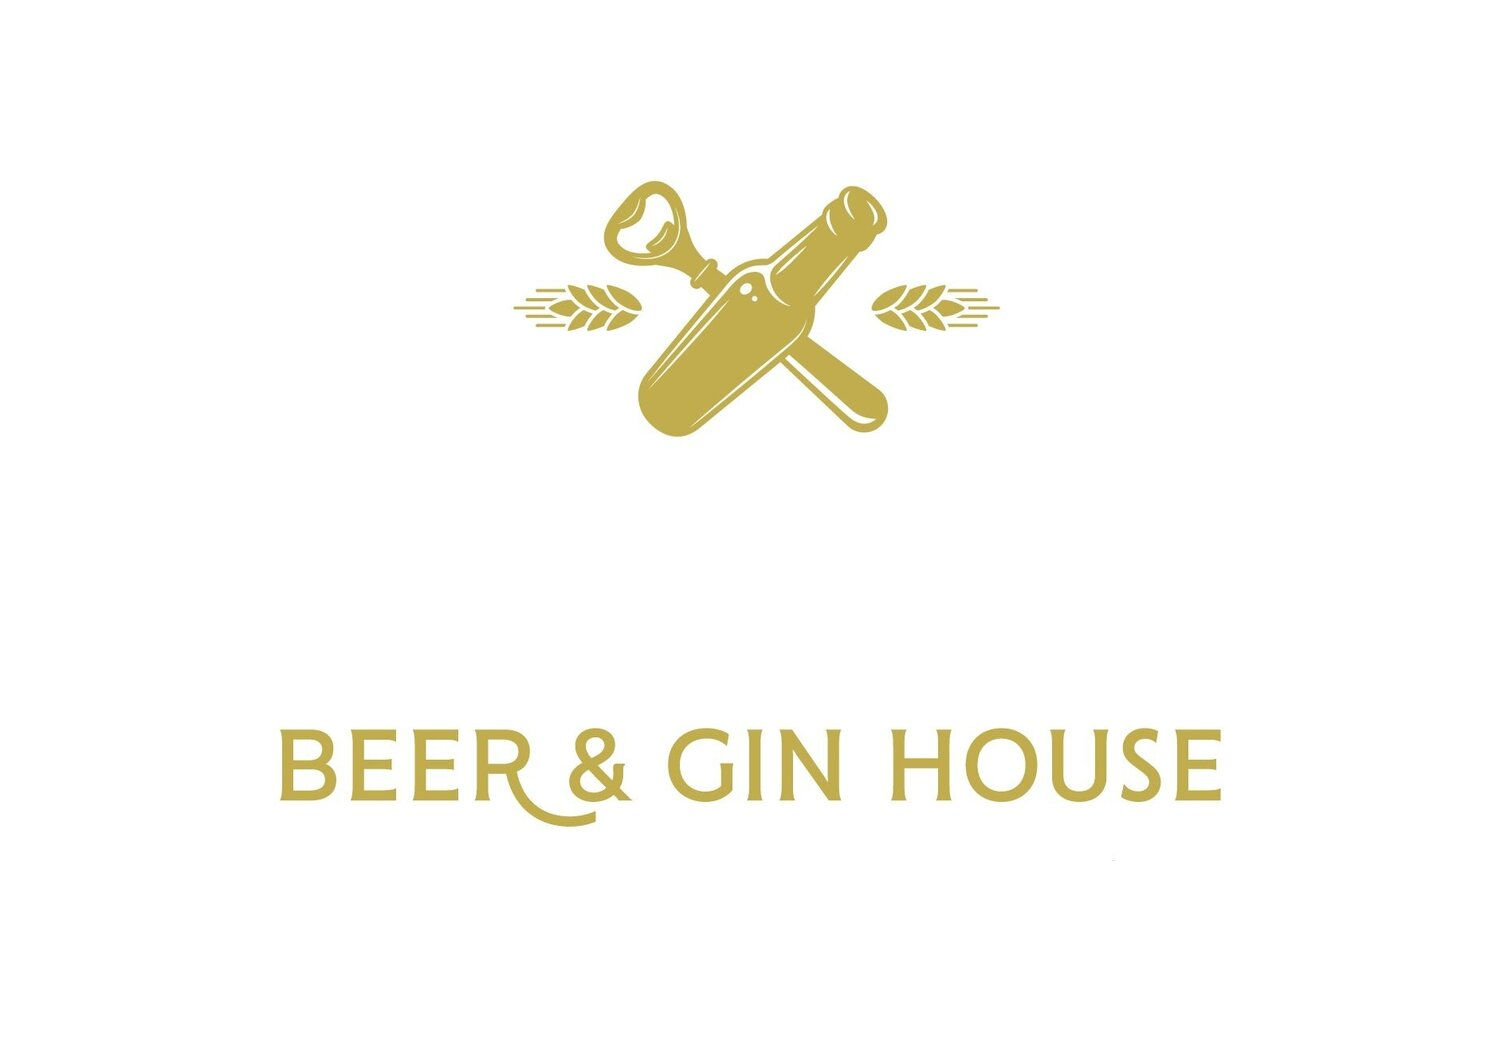 Granville's Beer & Gin House